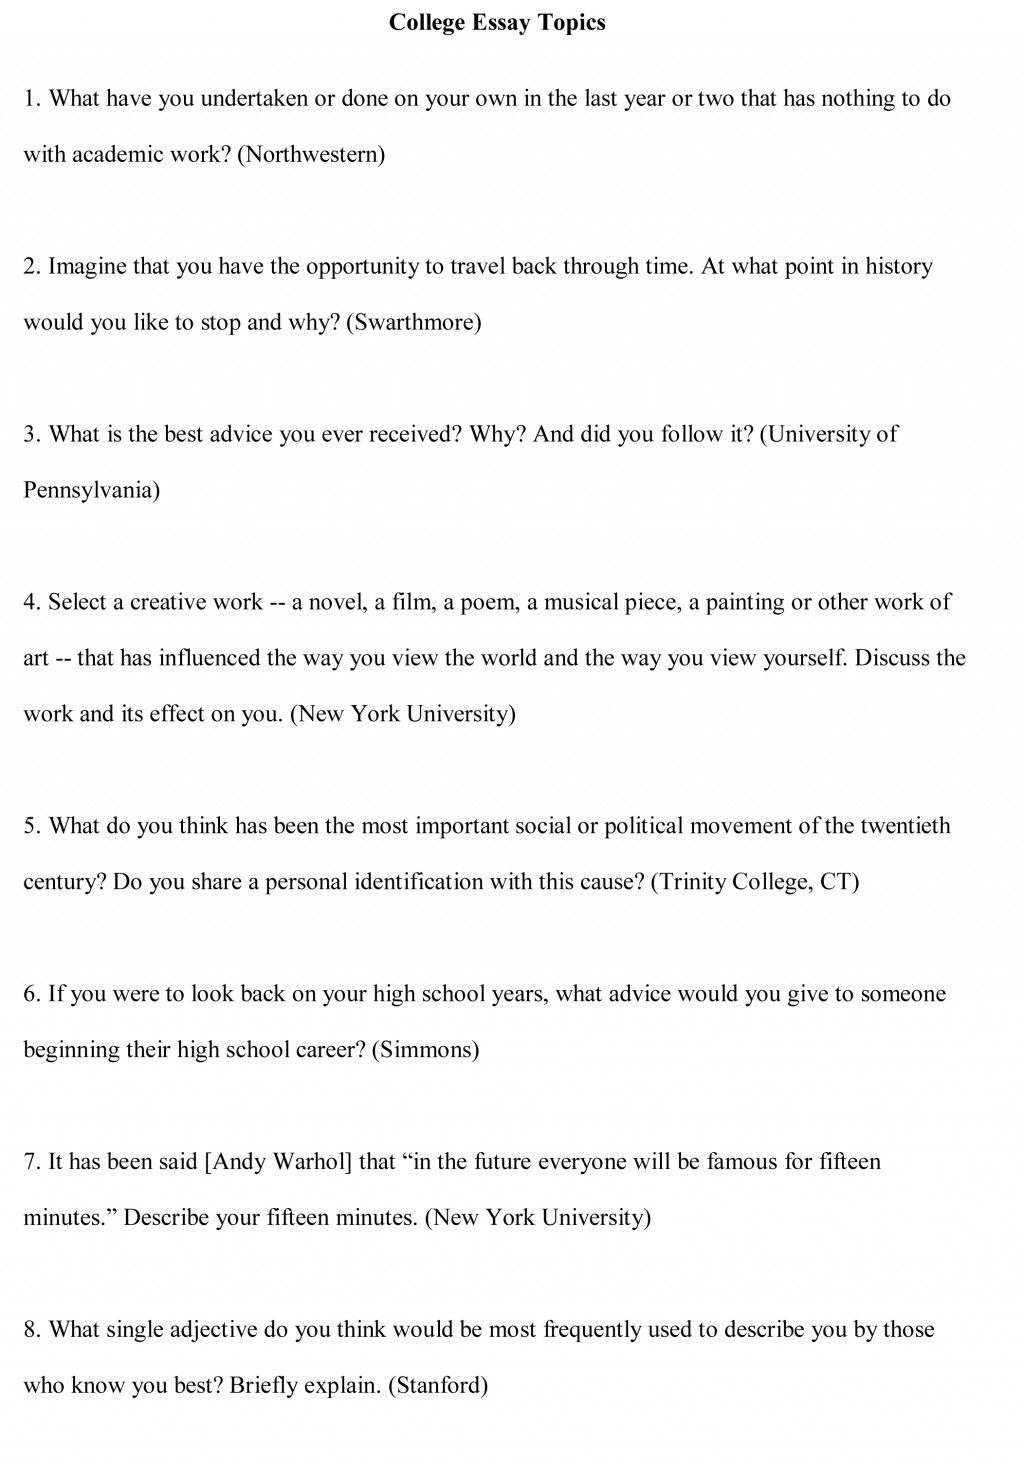 018 College Essay Topics Free Sample1 Controversial Research Paper Outstanding Ideas Large